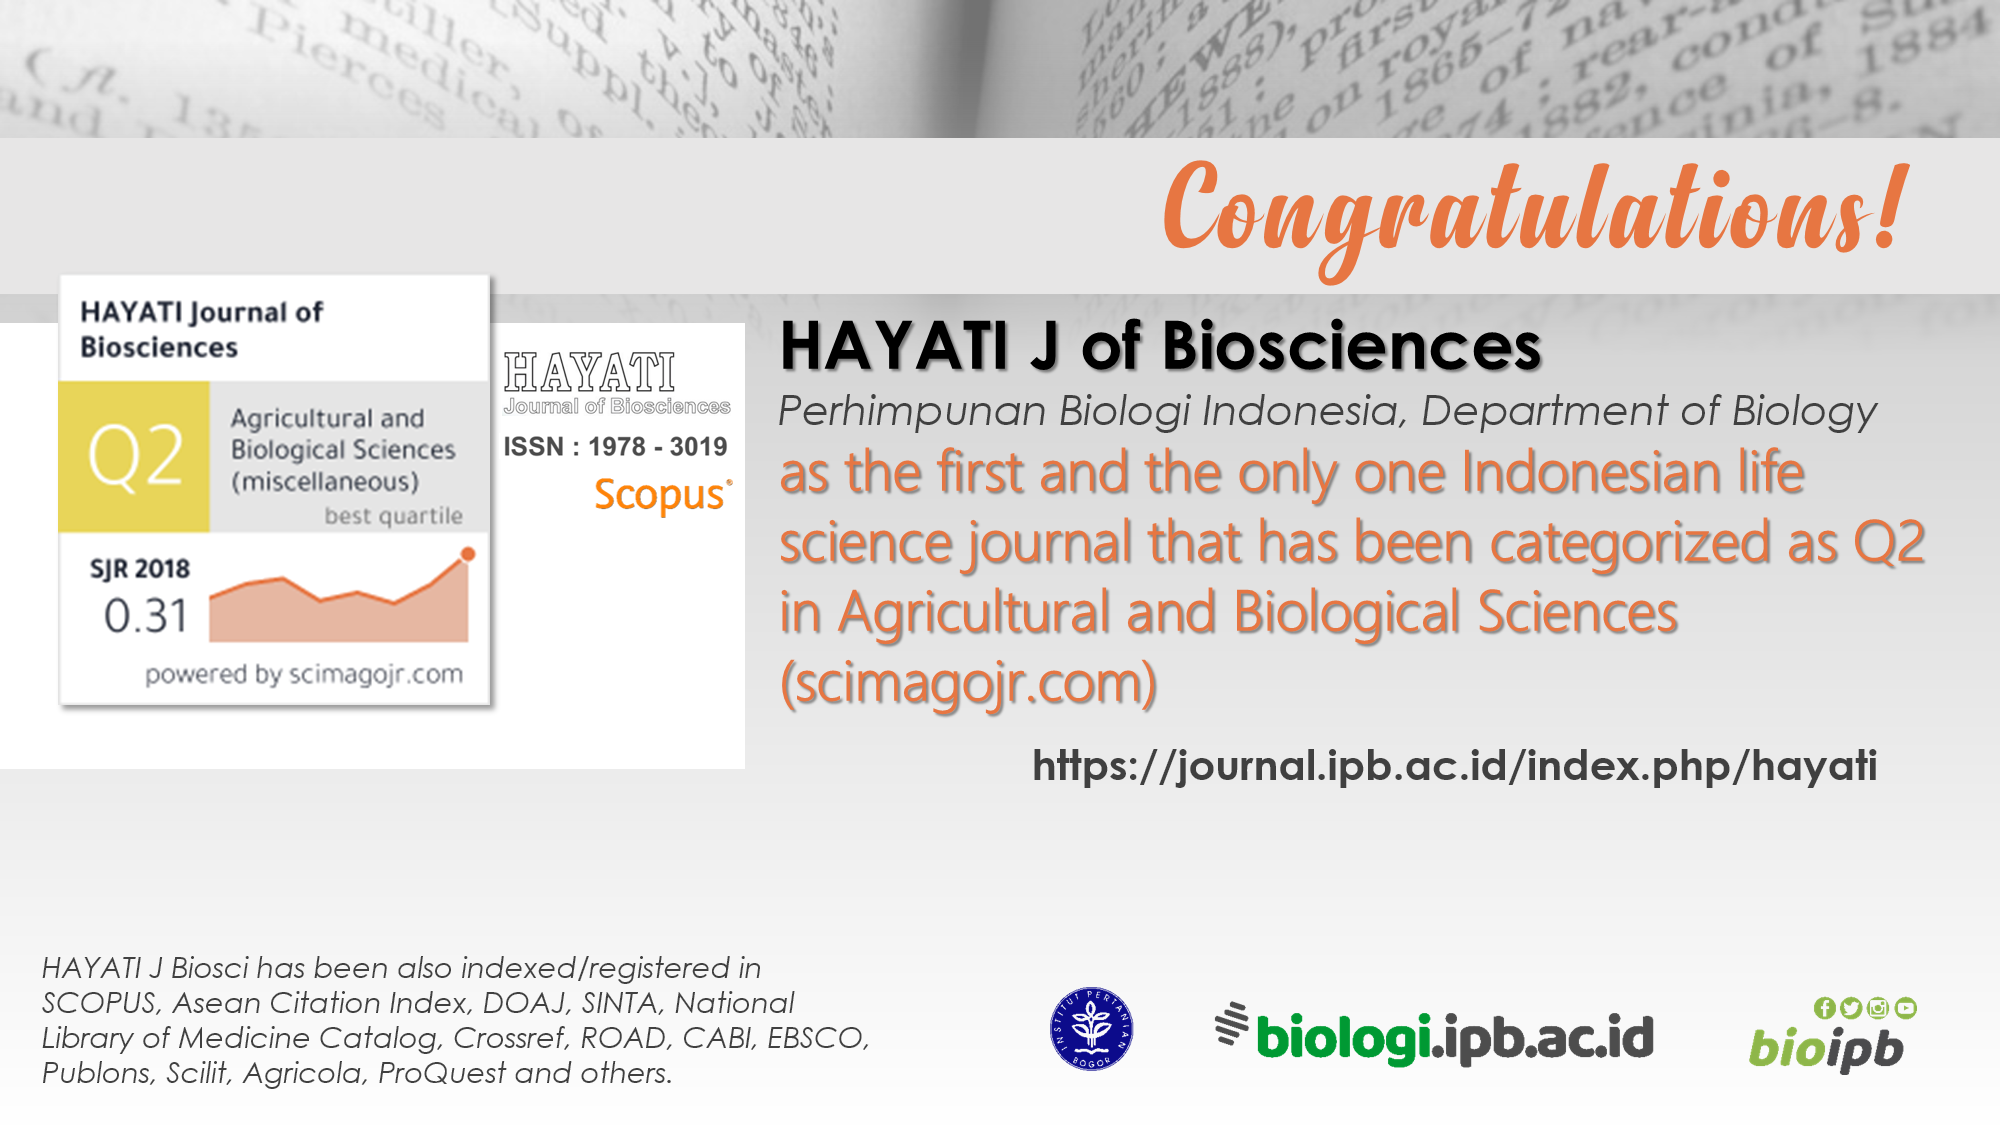 New HAYATI J of Biosciences' Achievement